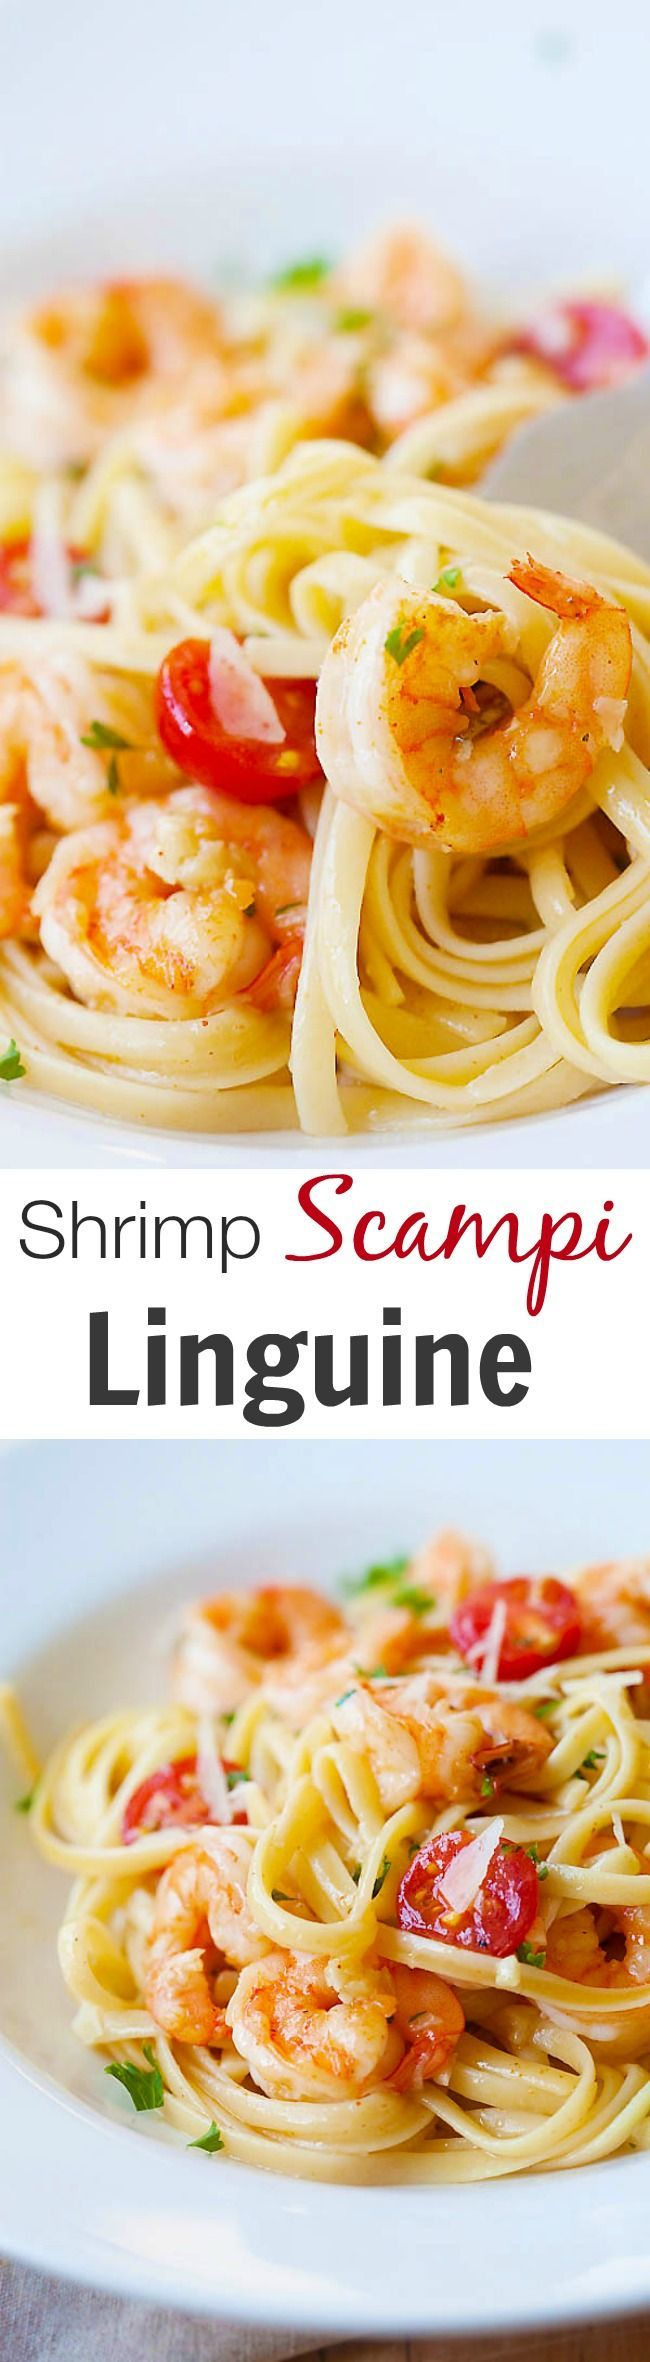 Garlicky buttery shrimp scampi linguine – quick & easy recipe that you can make in one pot for the family. Super yummy and you'll want it every day | rasamalaysia.com